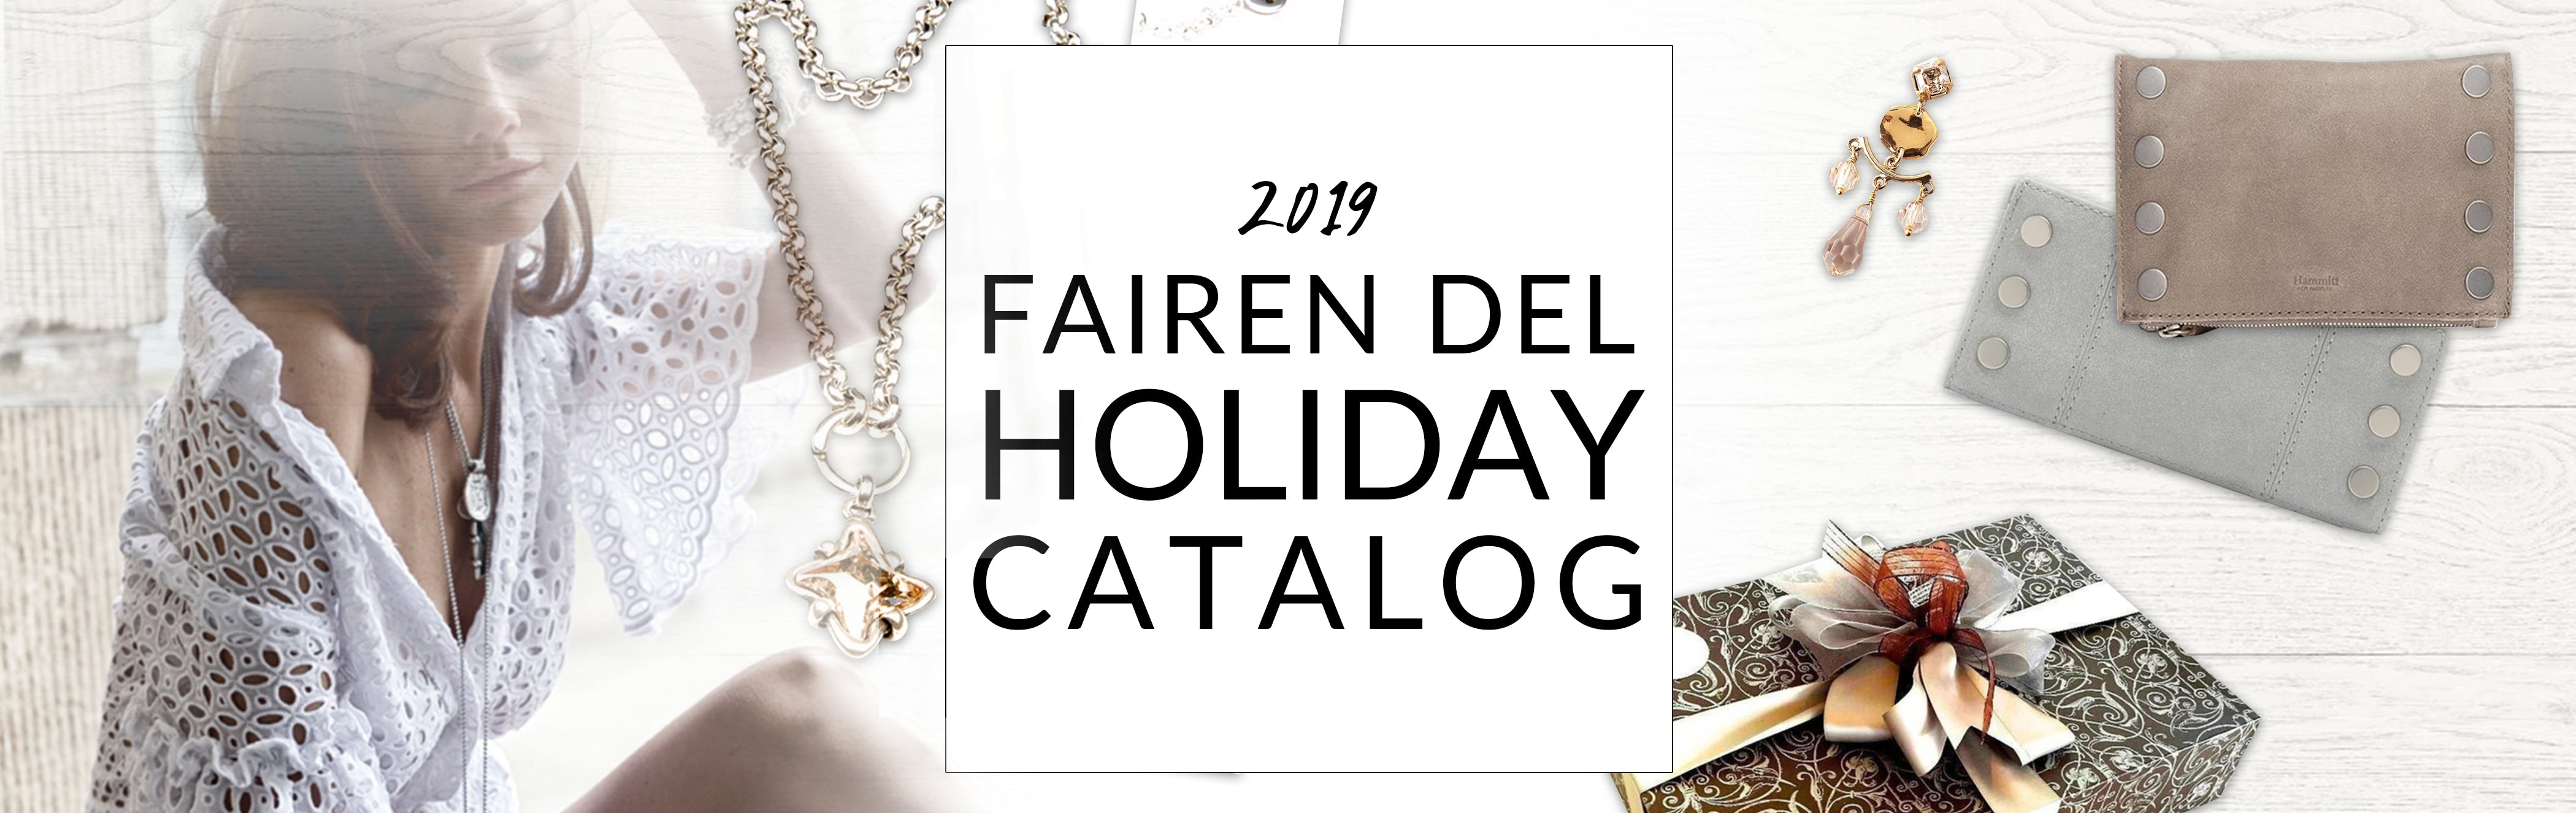 2019 Fairen Del Holiday Catalog